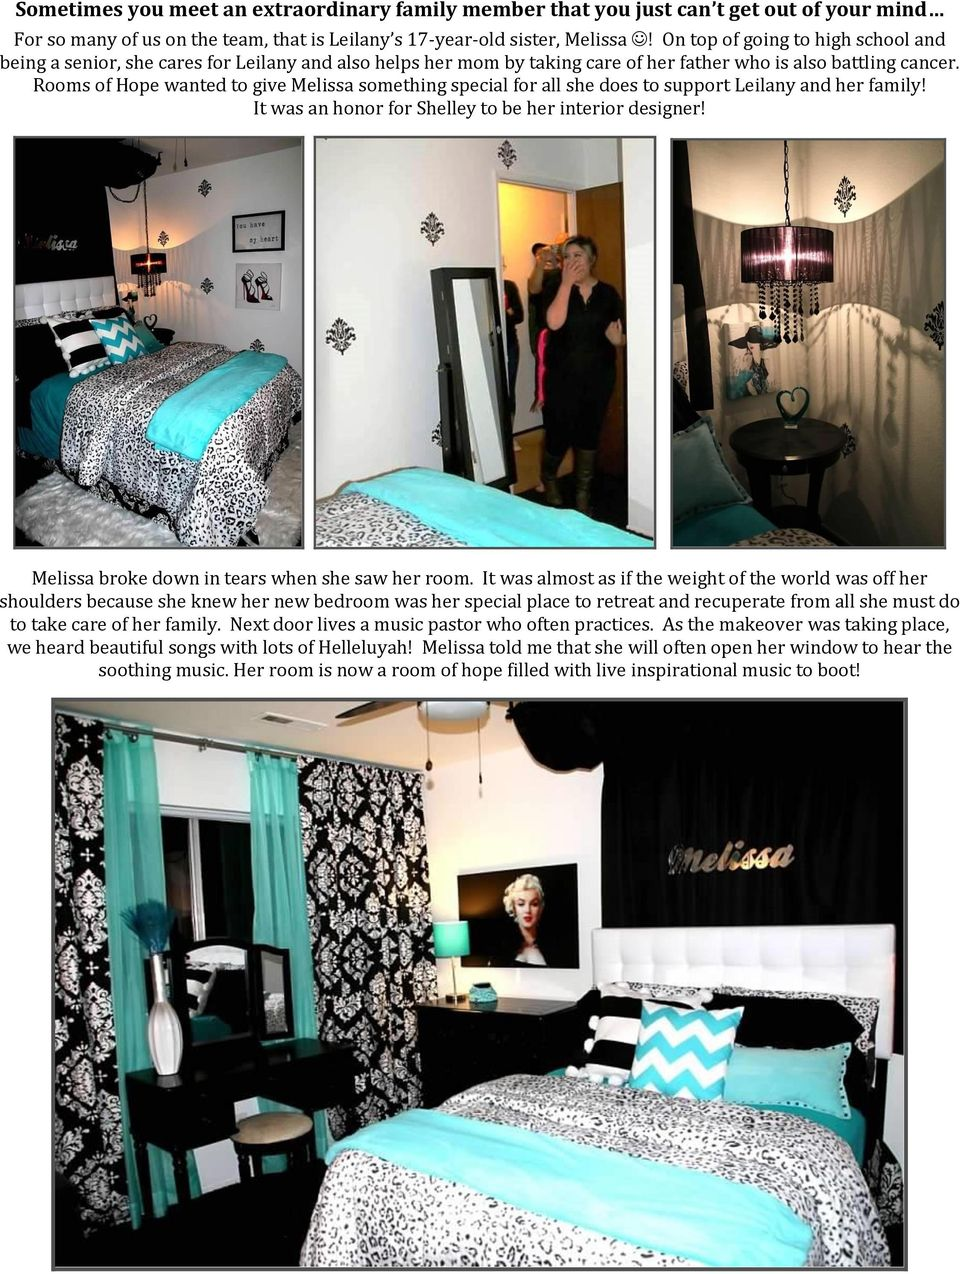 Rooms of Hope wanted to give Melissa something special for all she does to support Leilany and her family! It was an honor for Shelley to be her interior designer!